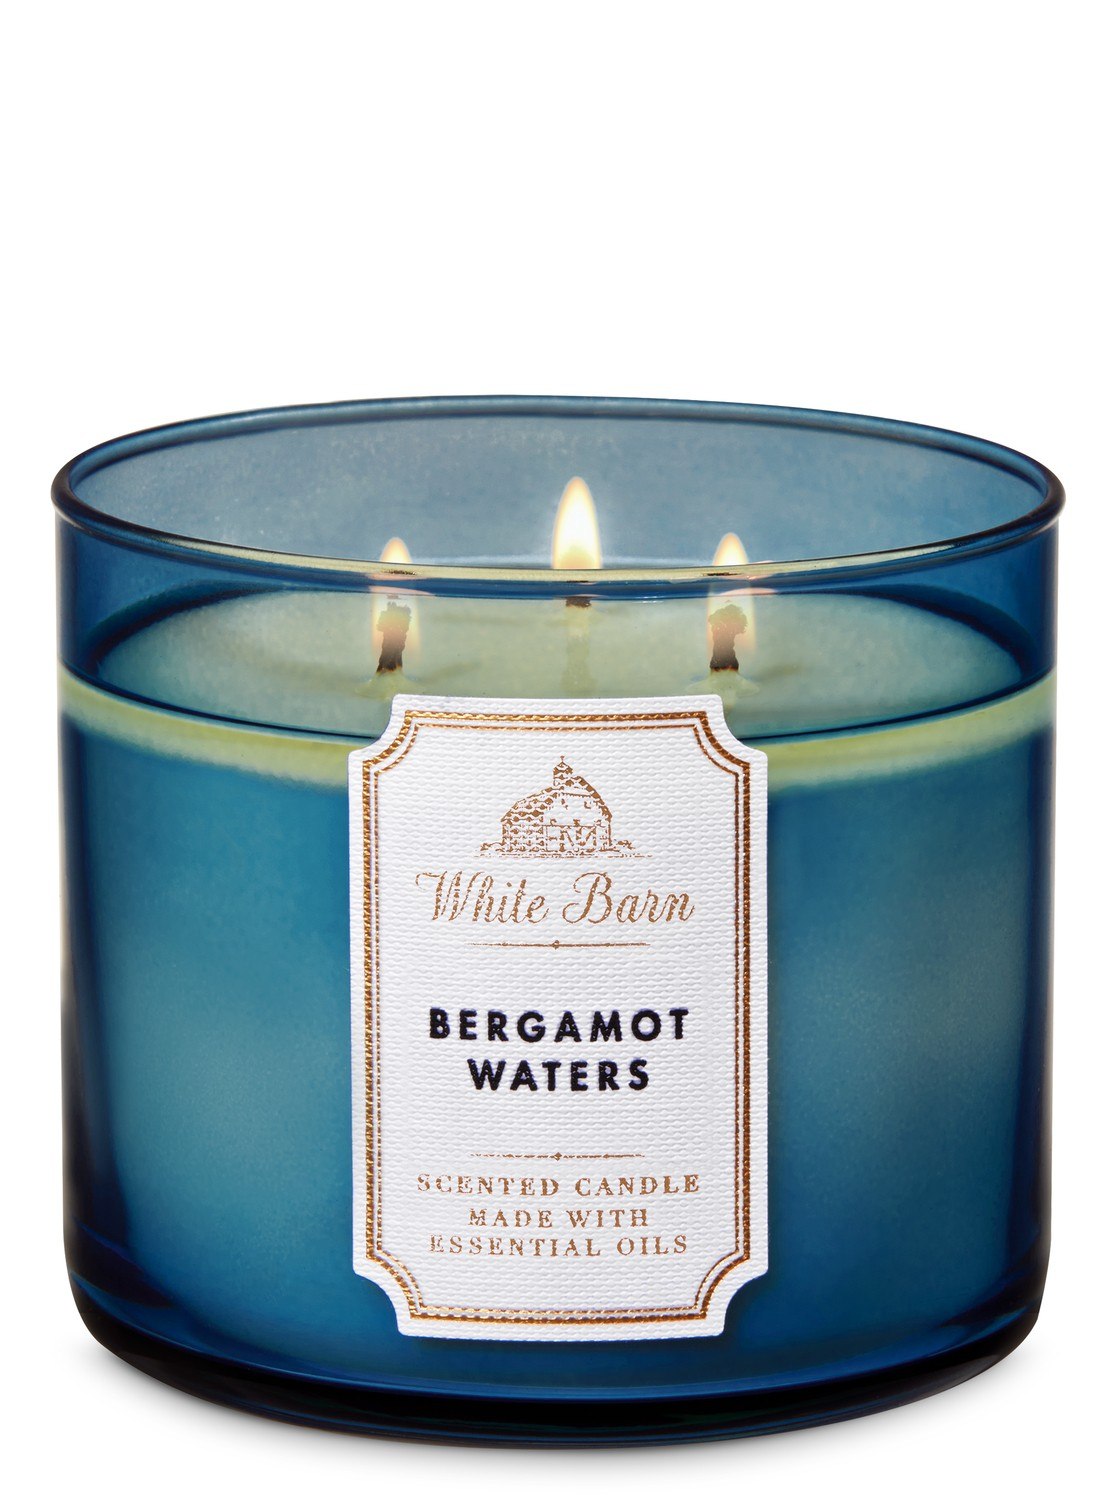 White Barn Bath and Body Works 3 Wick Scented Candle White Tea and Sage 14.5 Ounce